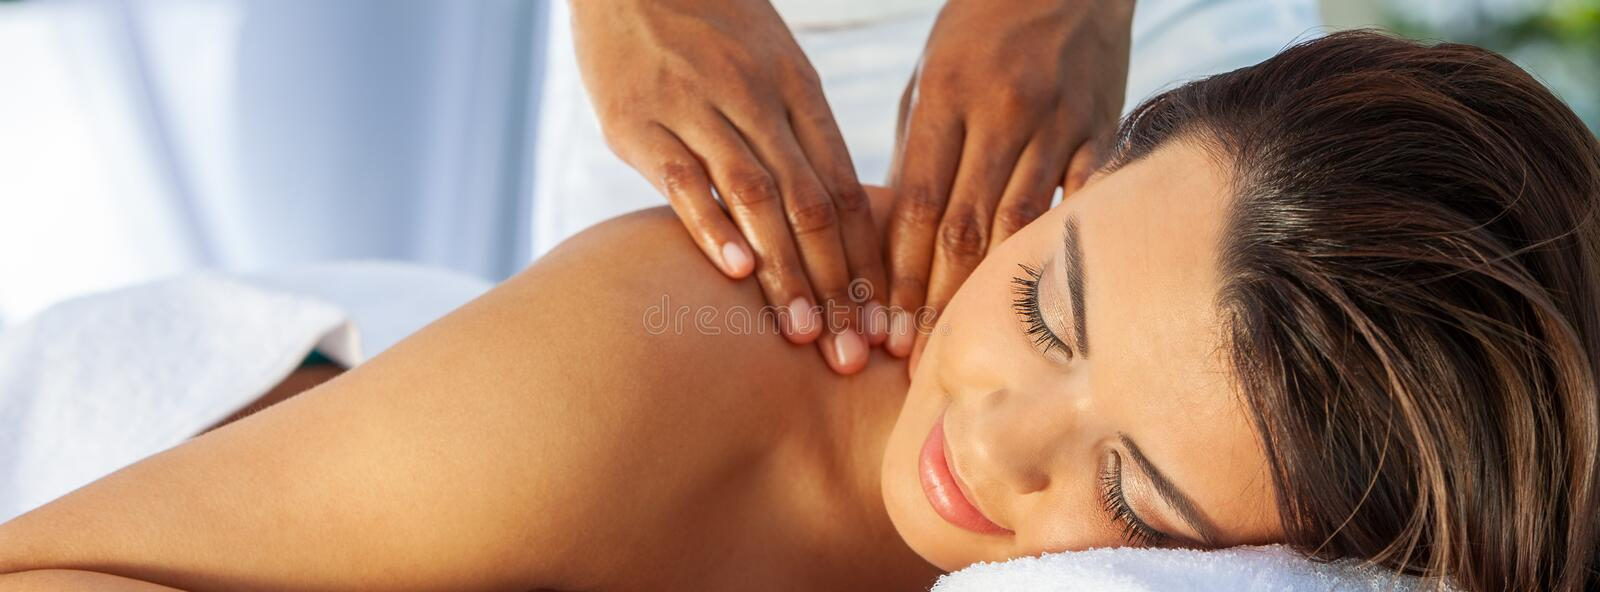 Woman At Health Spa Having Relaxing Massage Panorama Web Banner stock photos